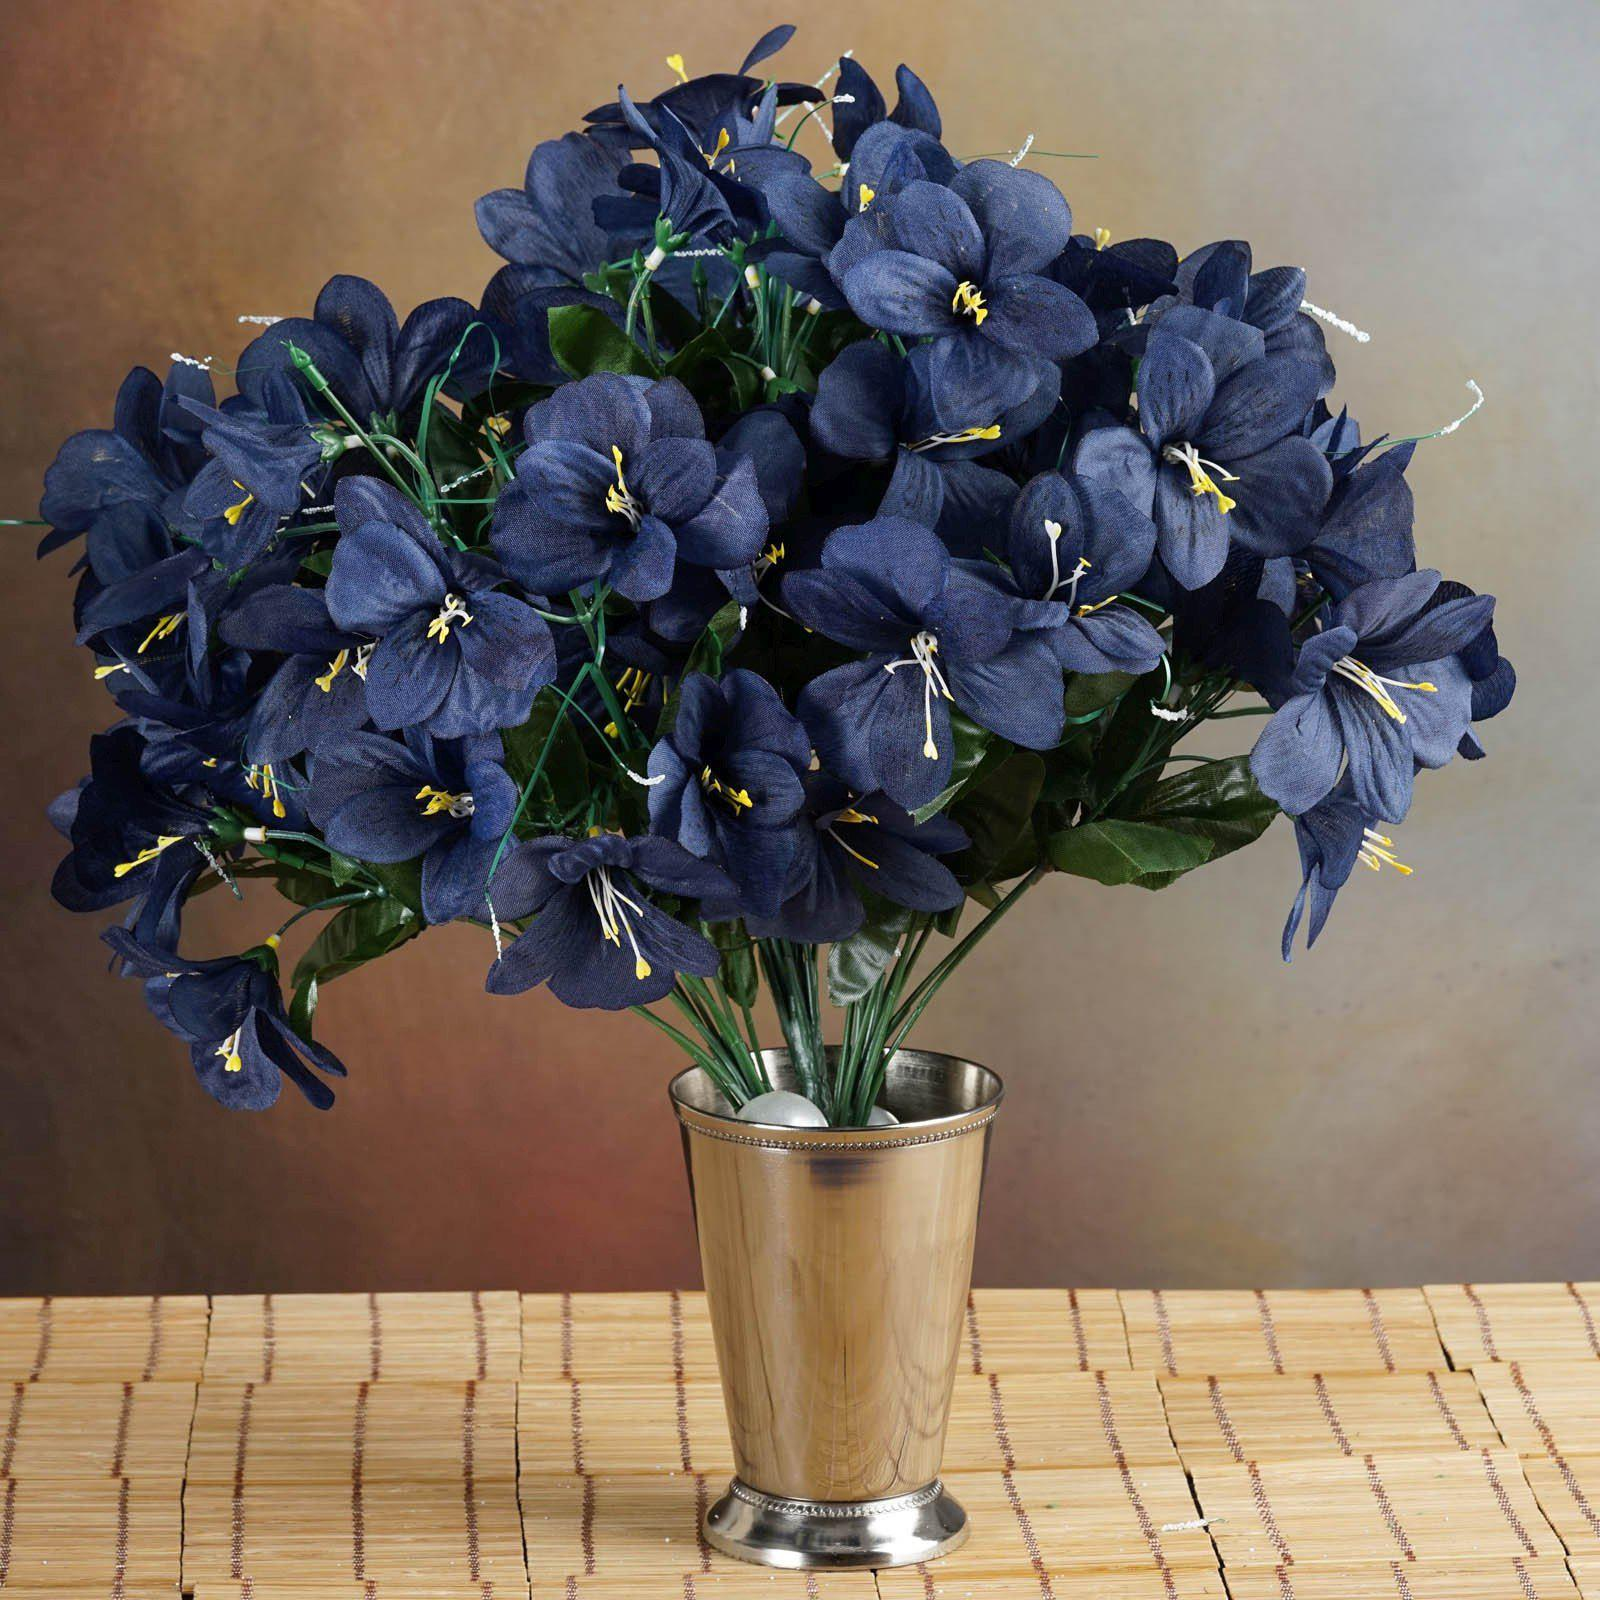 6 bush 144 pcs navy blue amaryllis artificial silk flowers wedding 144 wholesale artificial silk amaryllis flowers wedding vase centerpiece decor navy izmirmasajfo